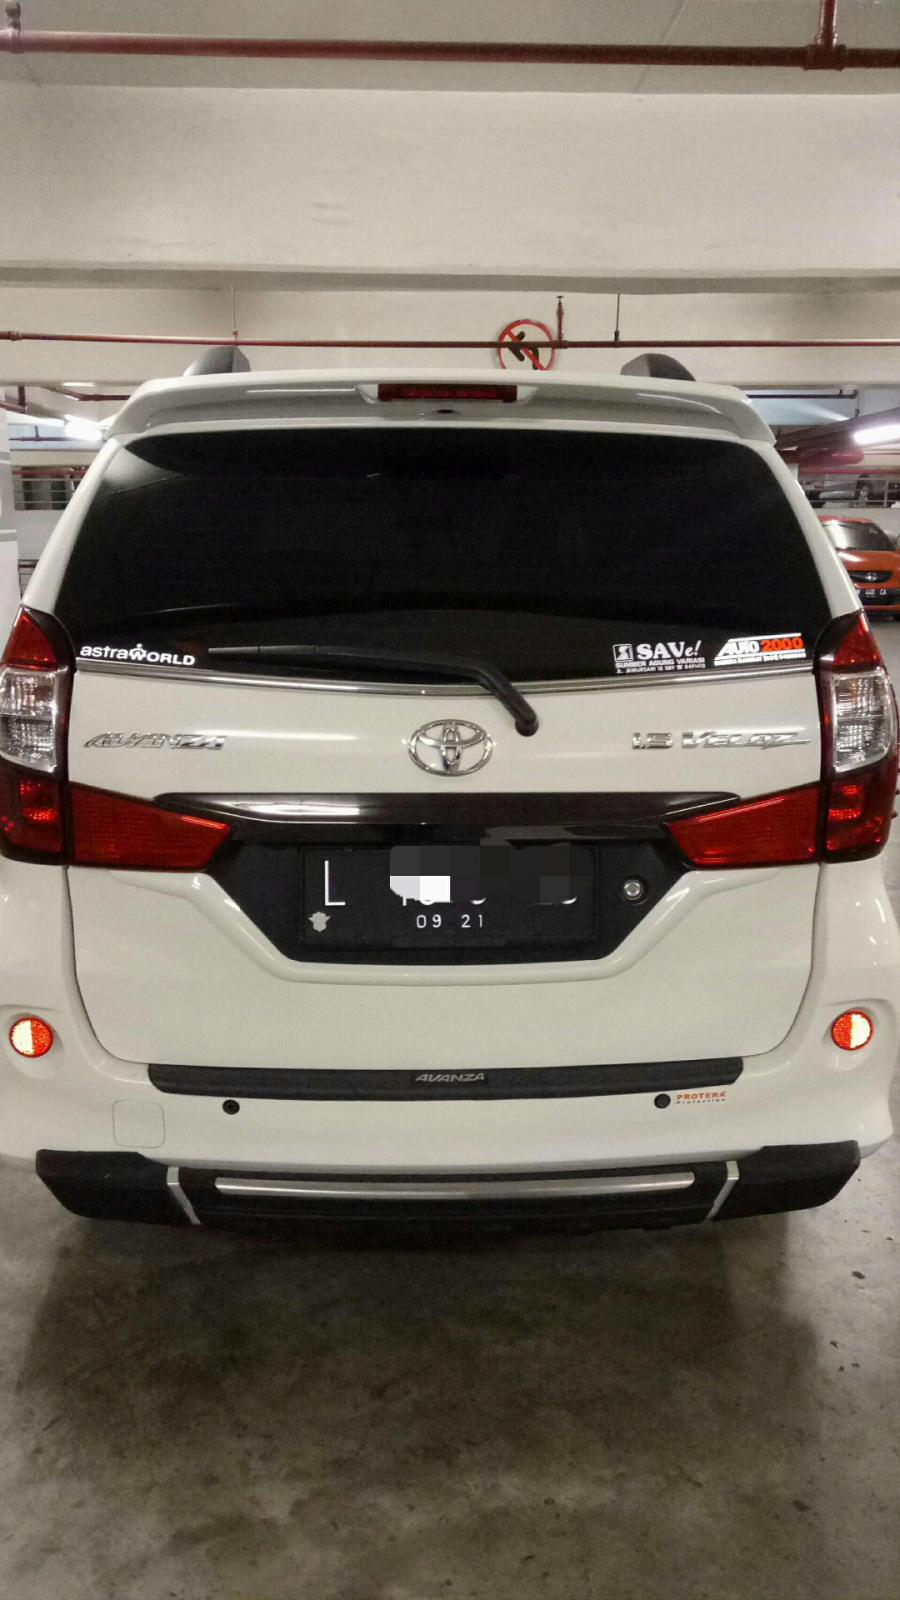 grand new veloz 1 5 all kijang innova spesifikasi over kredit avanza bu mobilbekas com toyota screenshot 2017 08 04